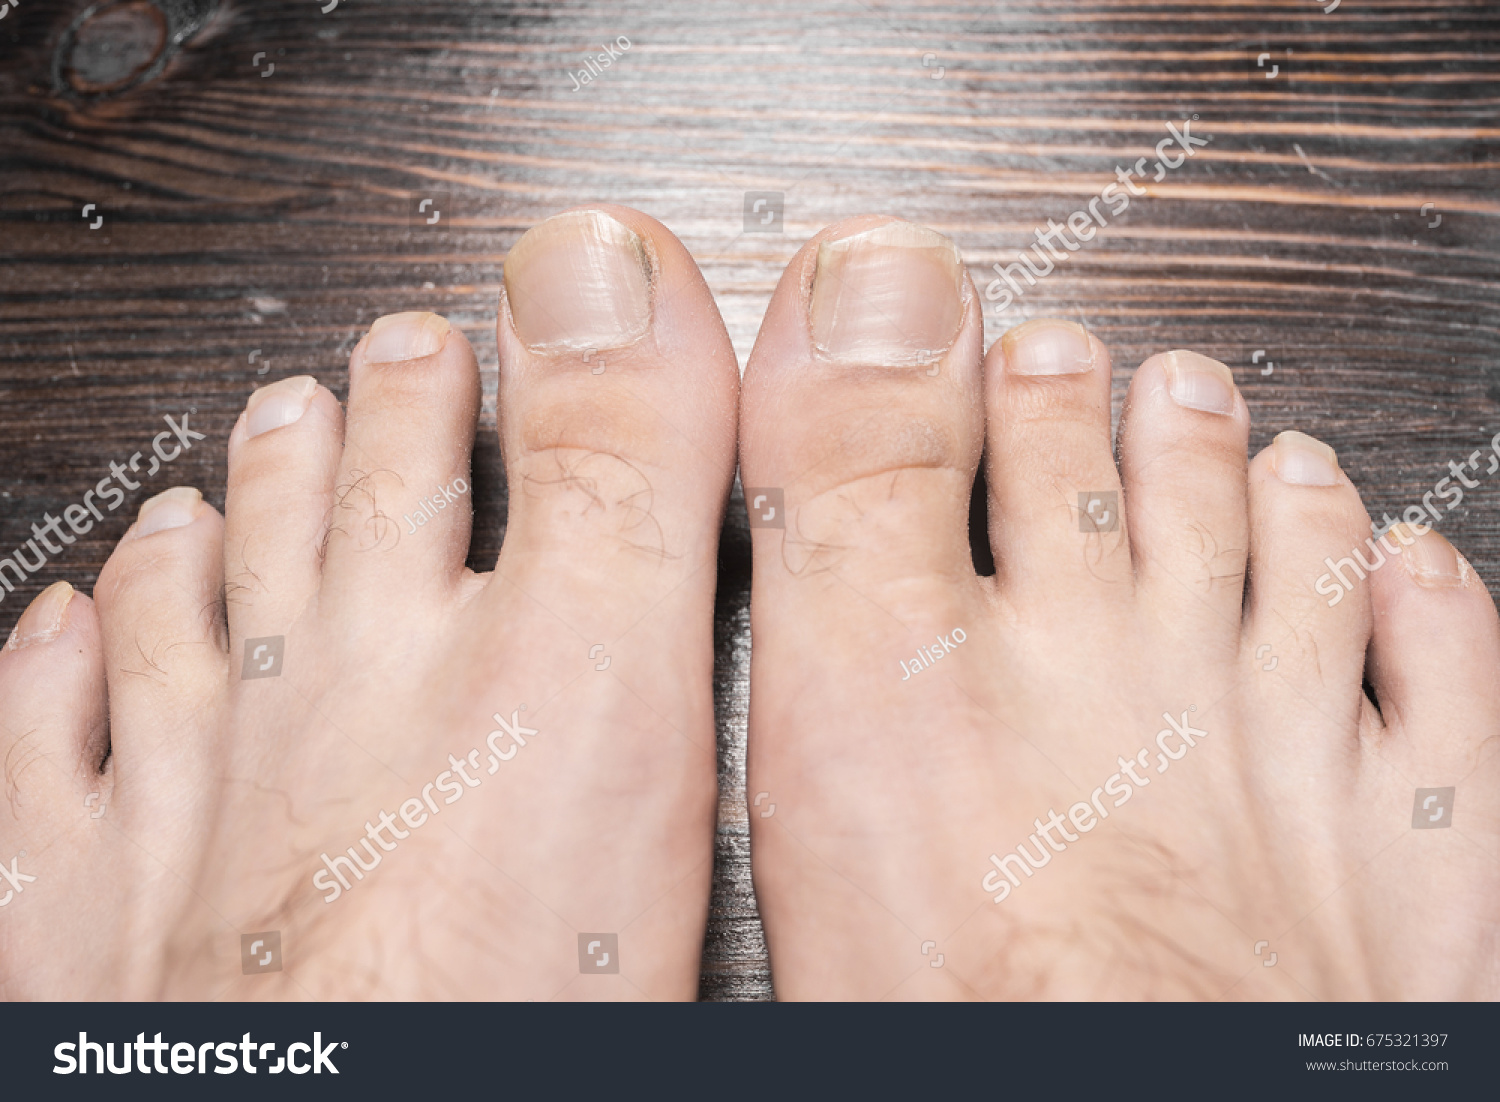 Long Toenails Stock Photo (Royalty Free) 675321397 - Shutterstock